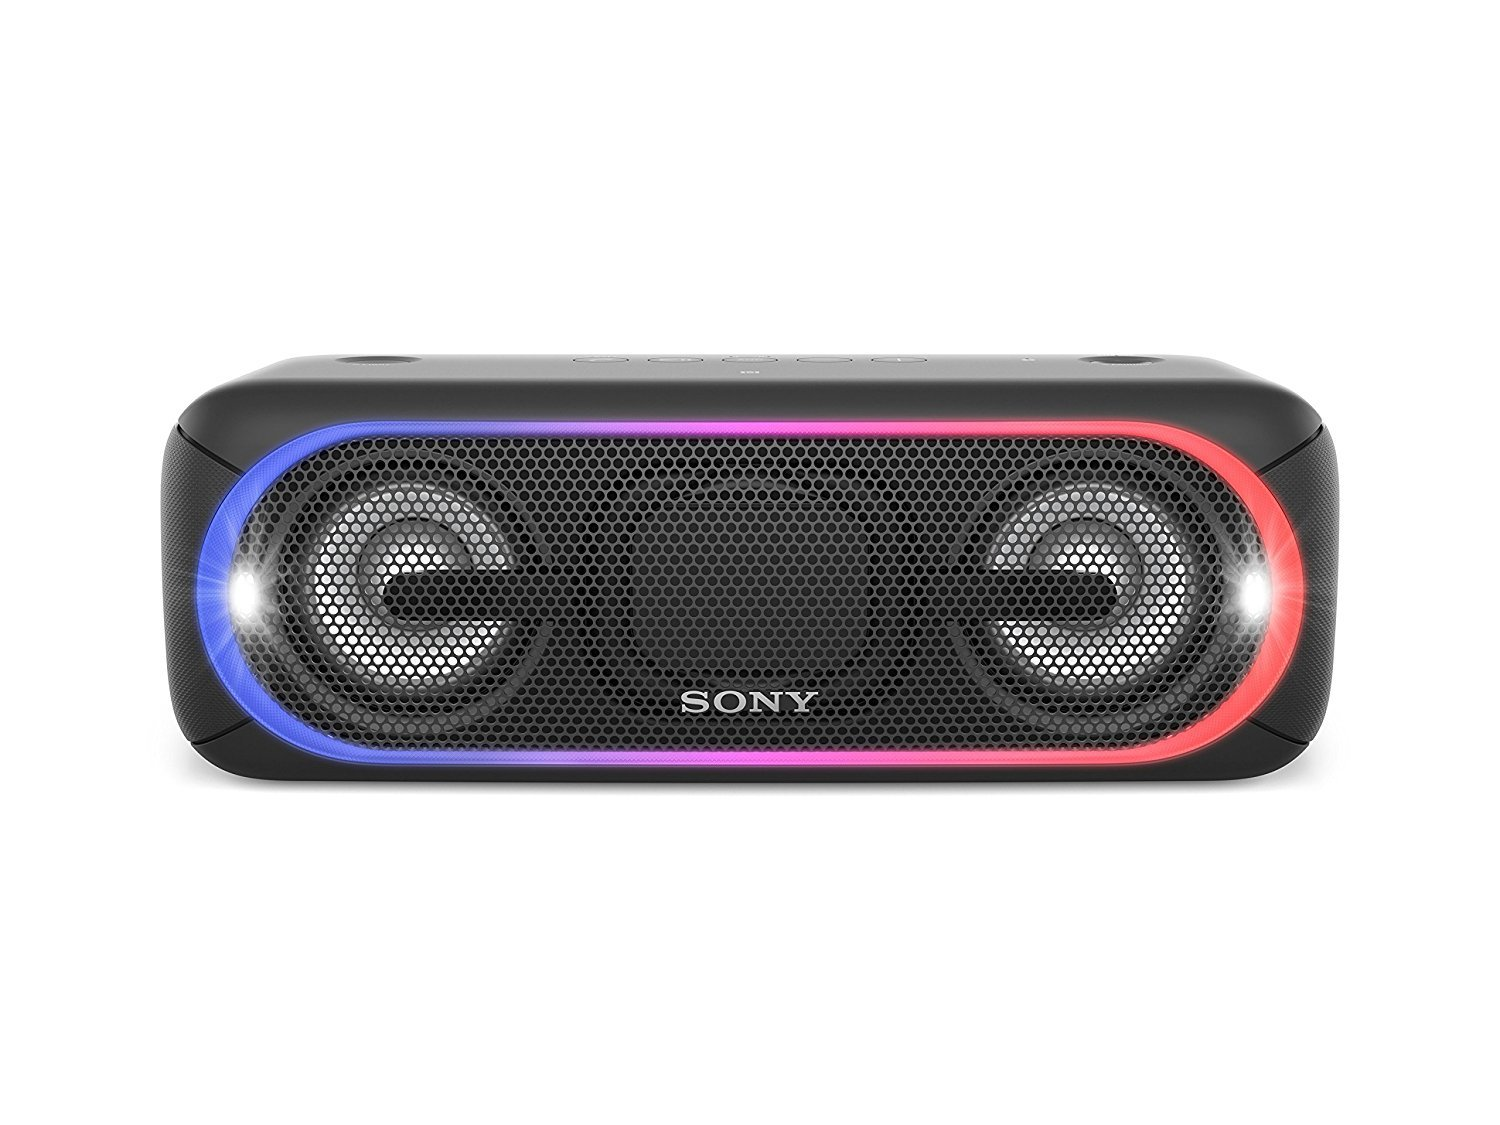 Sony XB40 Portable Wireless Speaker with Bluetooth and Speaker Lights, Black (2017 model)